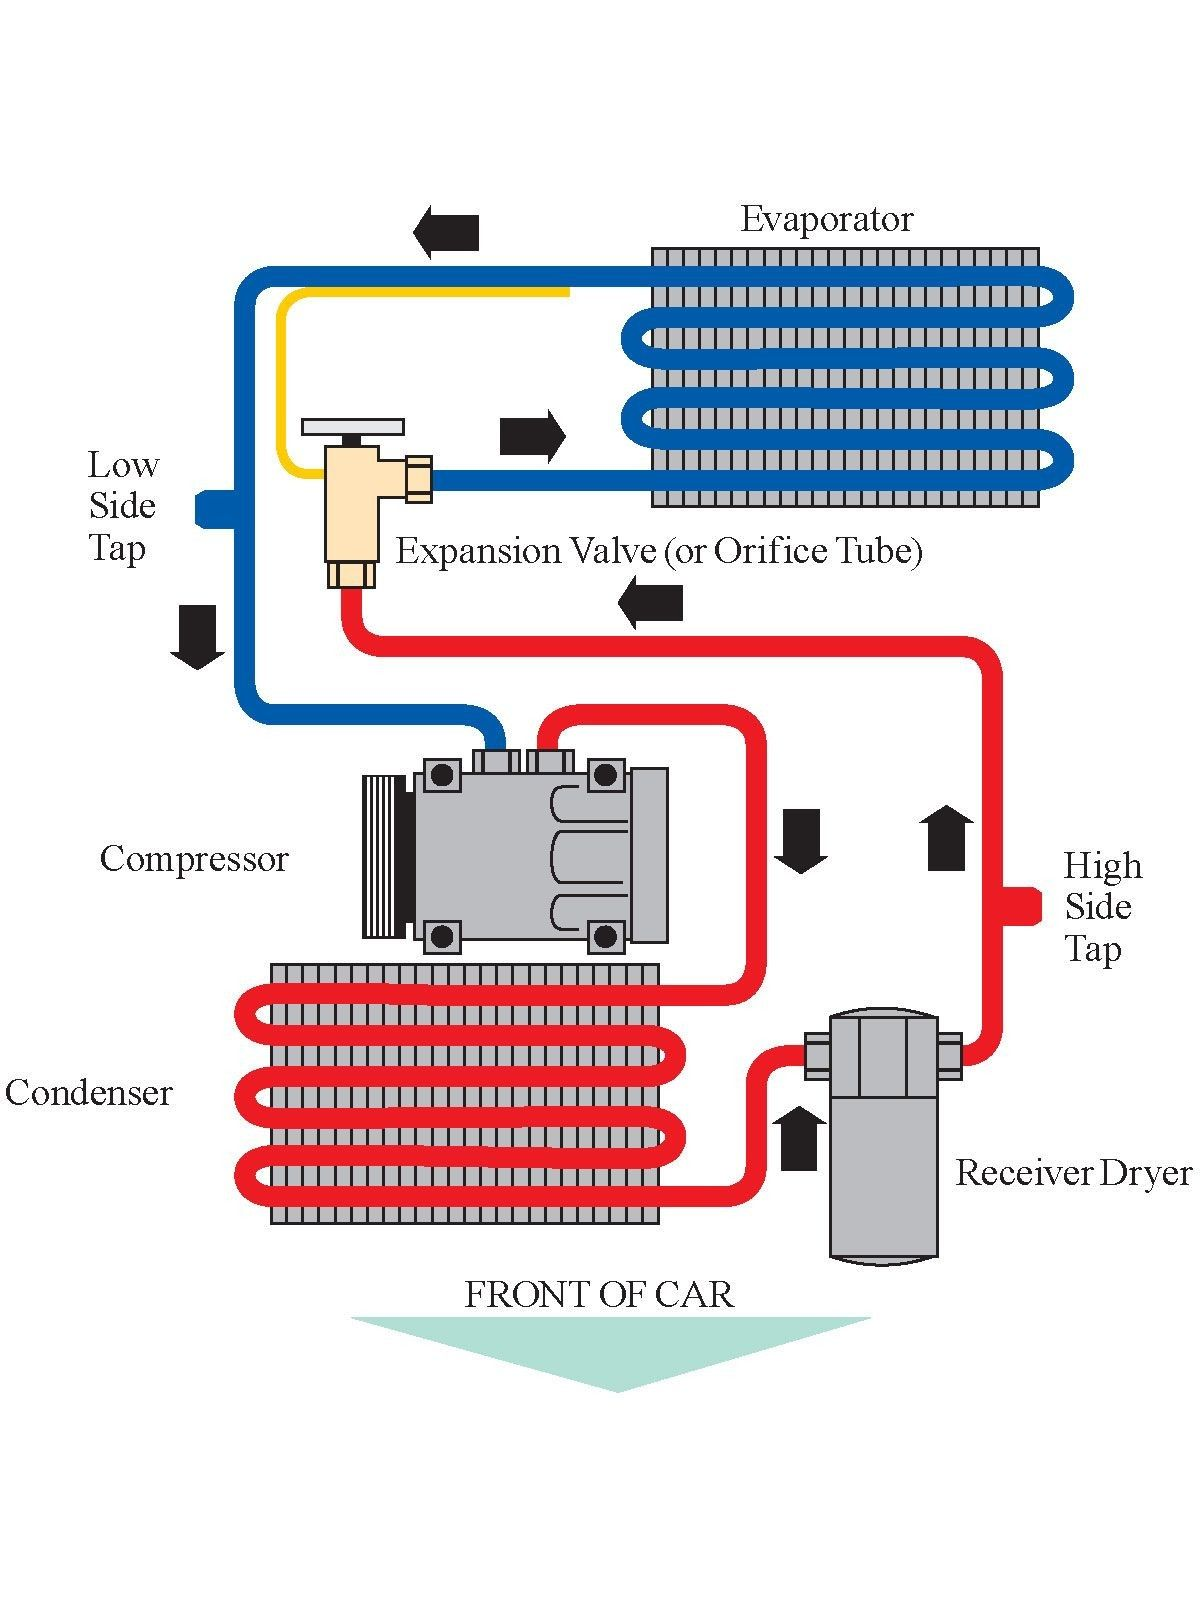 Unique Wiring Diagram Of Lg Window Ac Diagram Diagramtemplate Diagramsample Car Air Conditioning Ac System Refrigeration And Air Conditioning